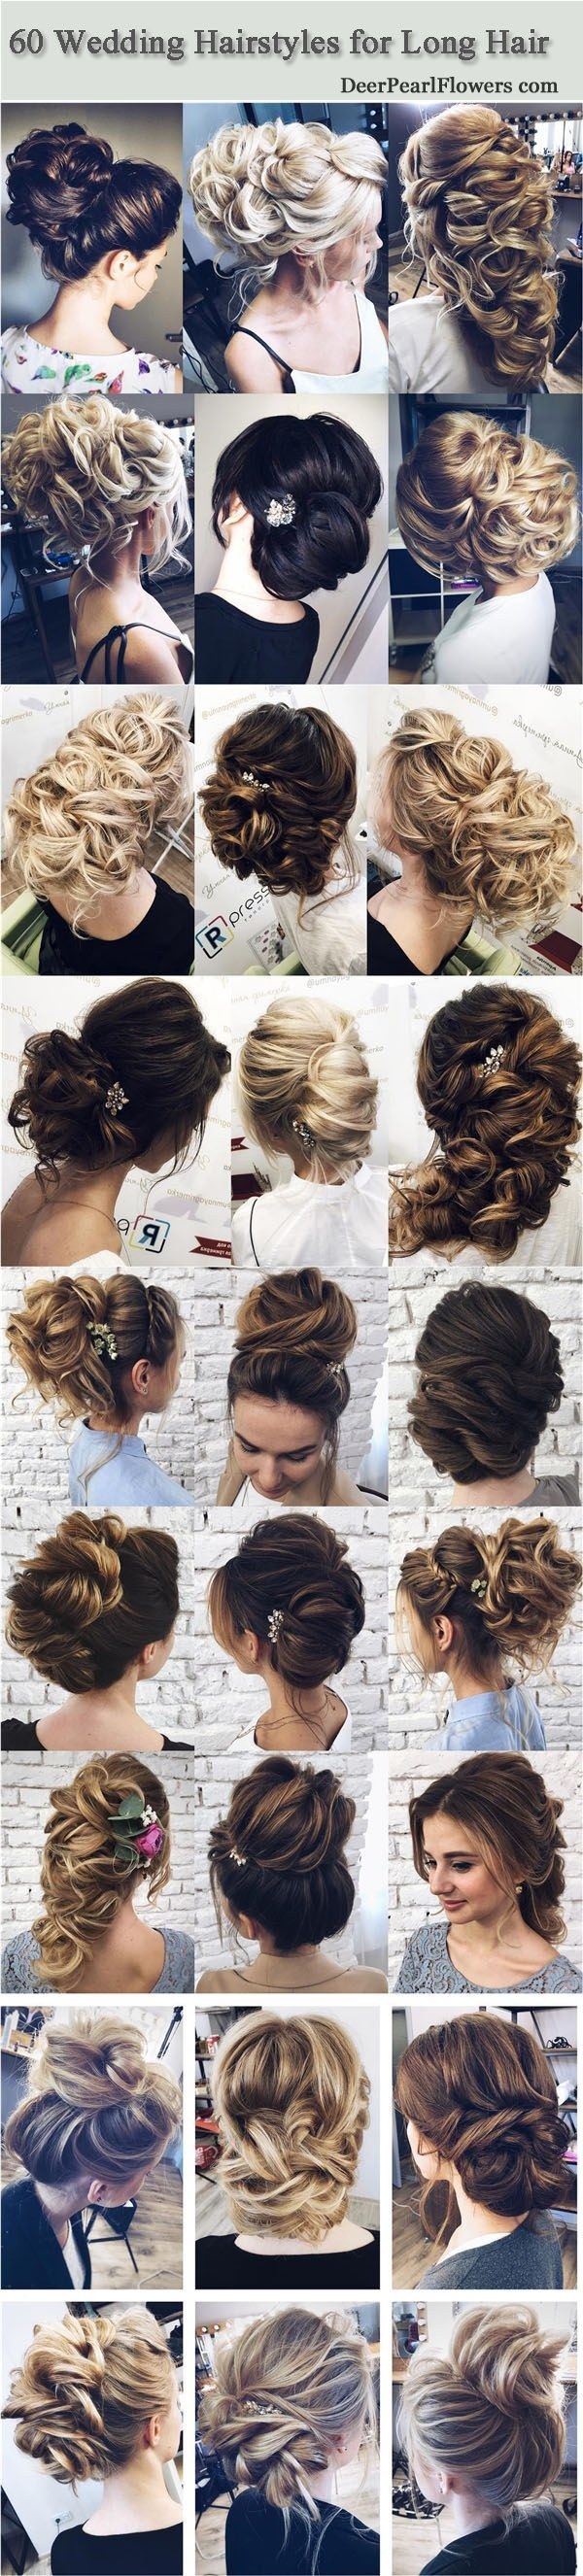 wedding hairstyles for long hair from tonyastylist things i